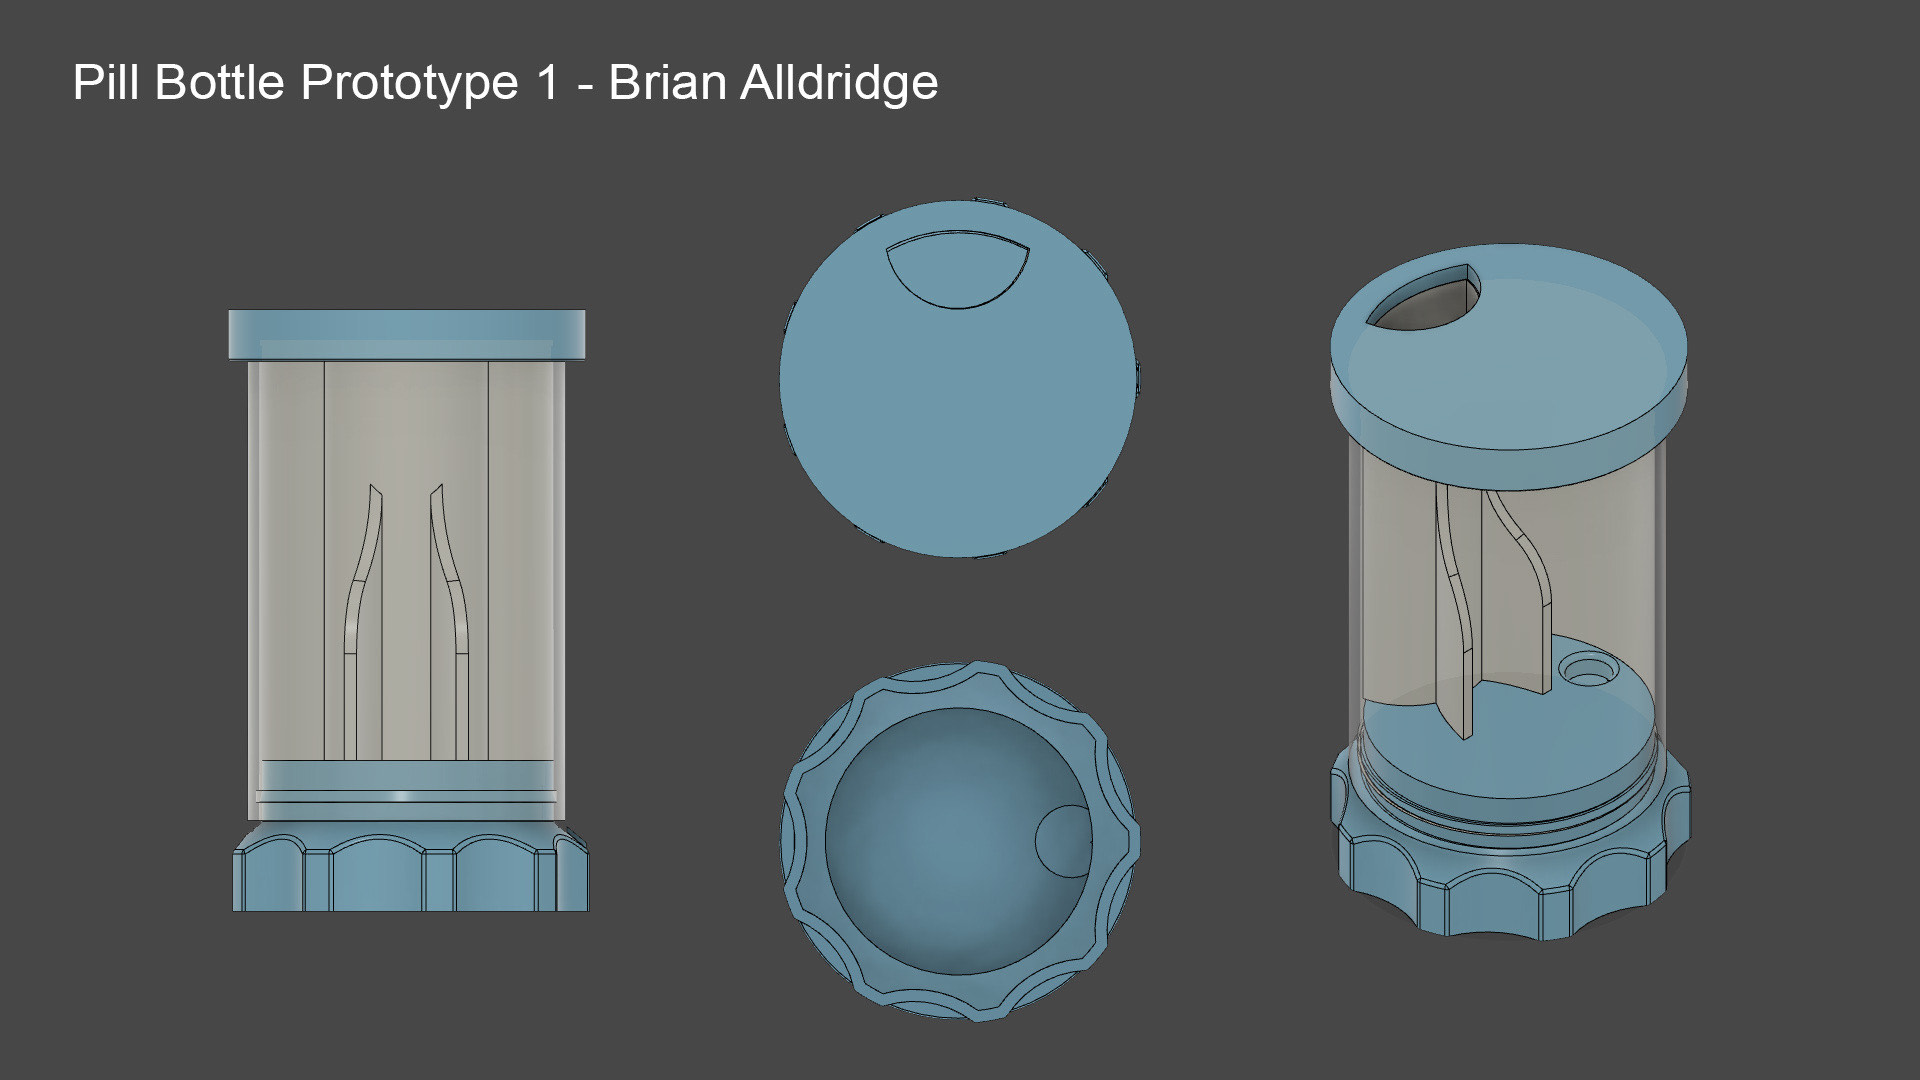 """Text at the top left reads """"Pill Bottle Prototype 1 - Brian Alldridge"""". There is a side, top, and bottom view of a bottle with a transparent body and blue cap and base. Inside the bottle is a chute for a pill to travel through."""